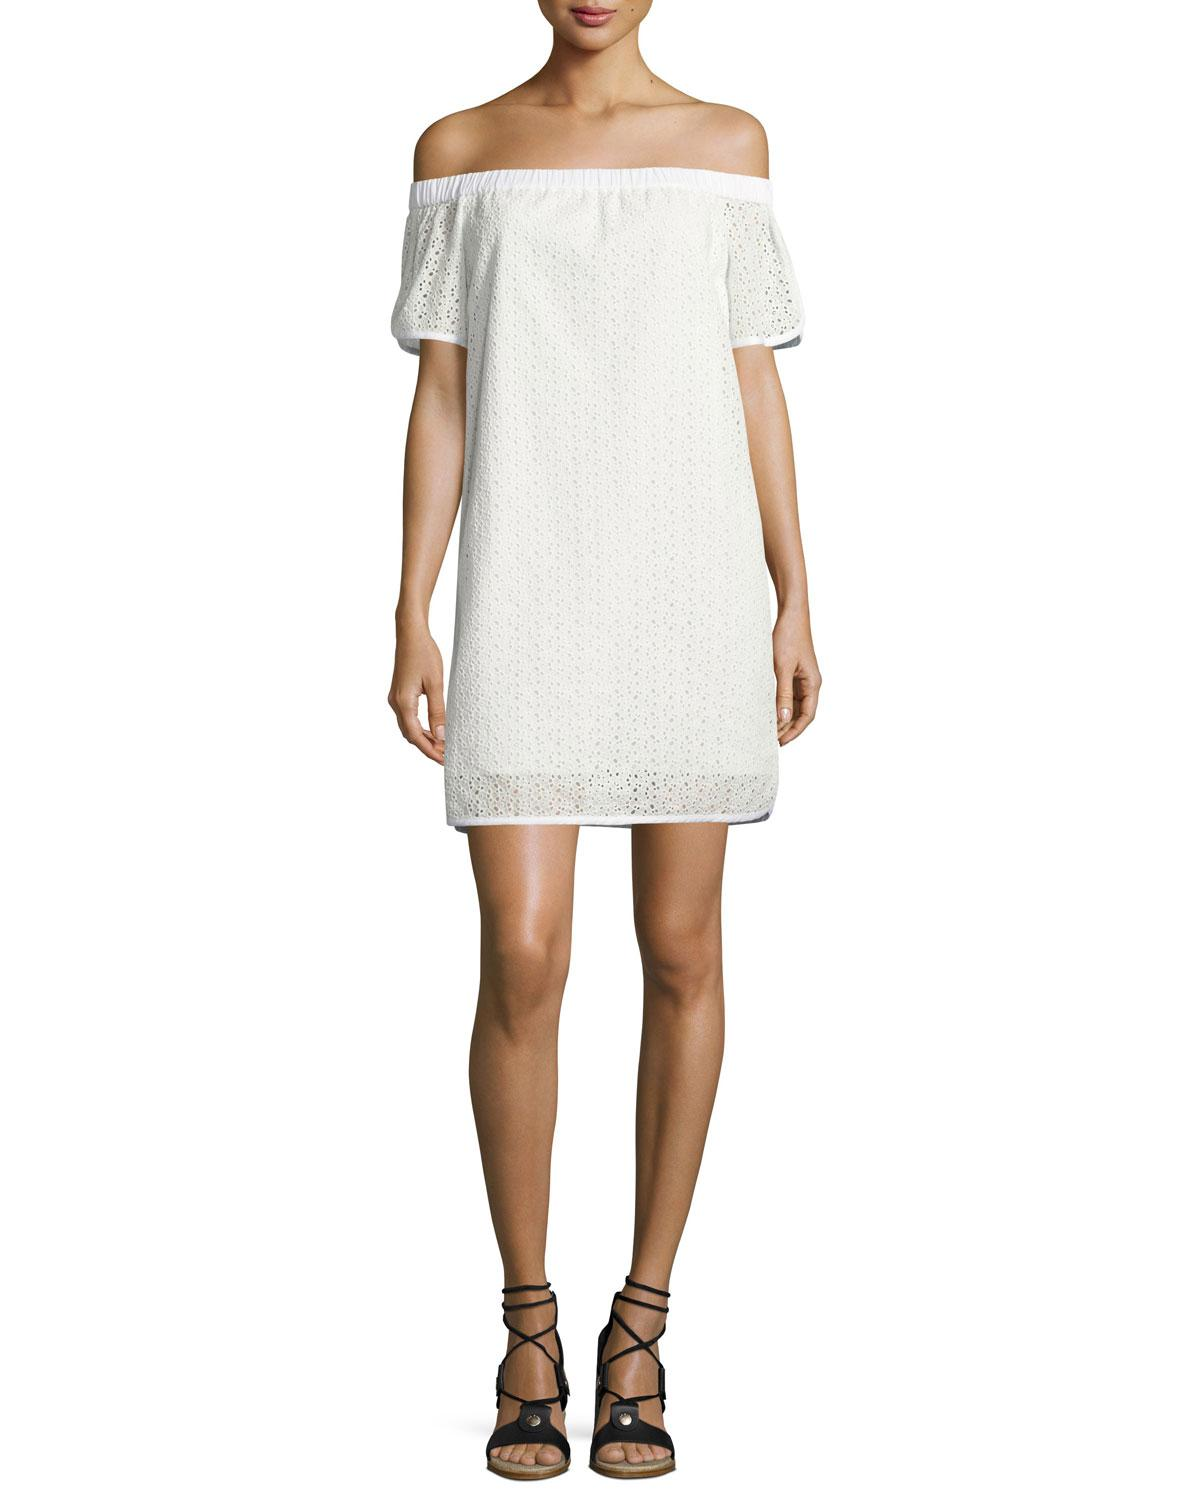 Rag & Bone Woman Off-the-shoulder Broderie Anglaise Cotton Dress White Size L Rag & Bone jv5Q3aBK